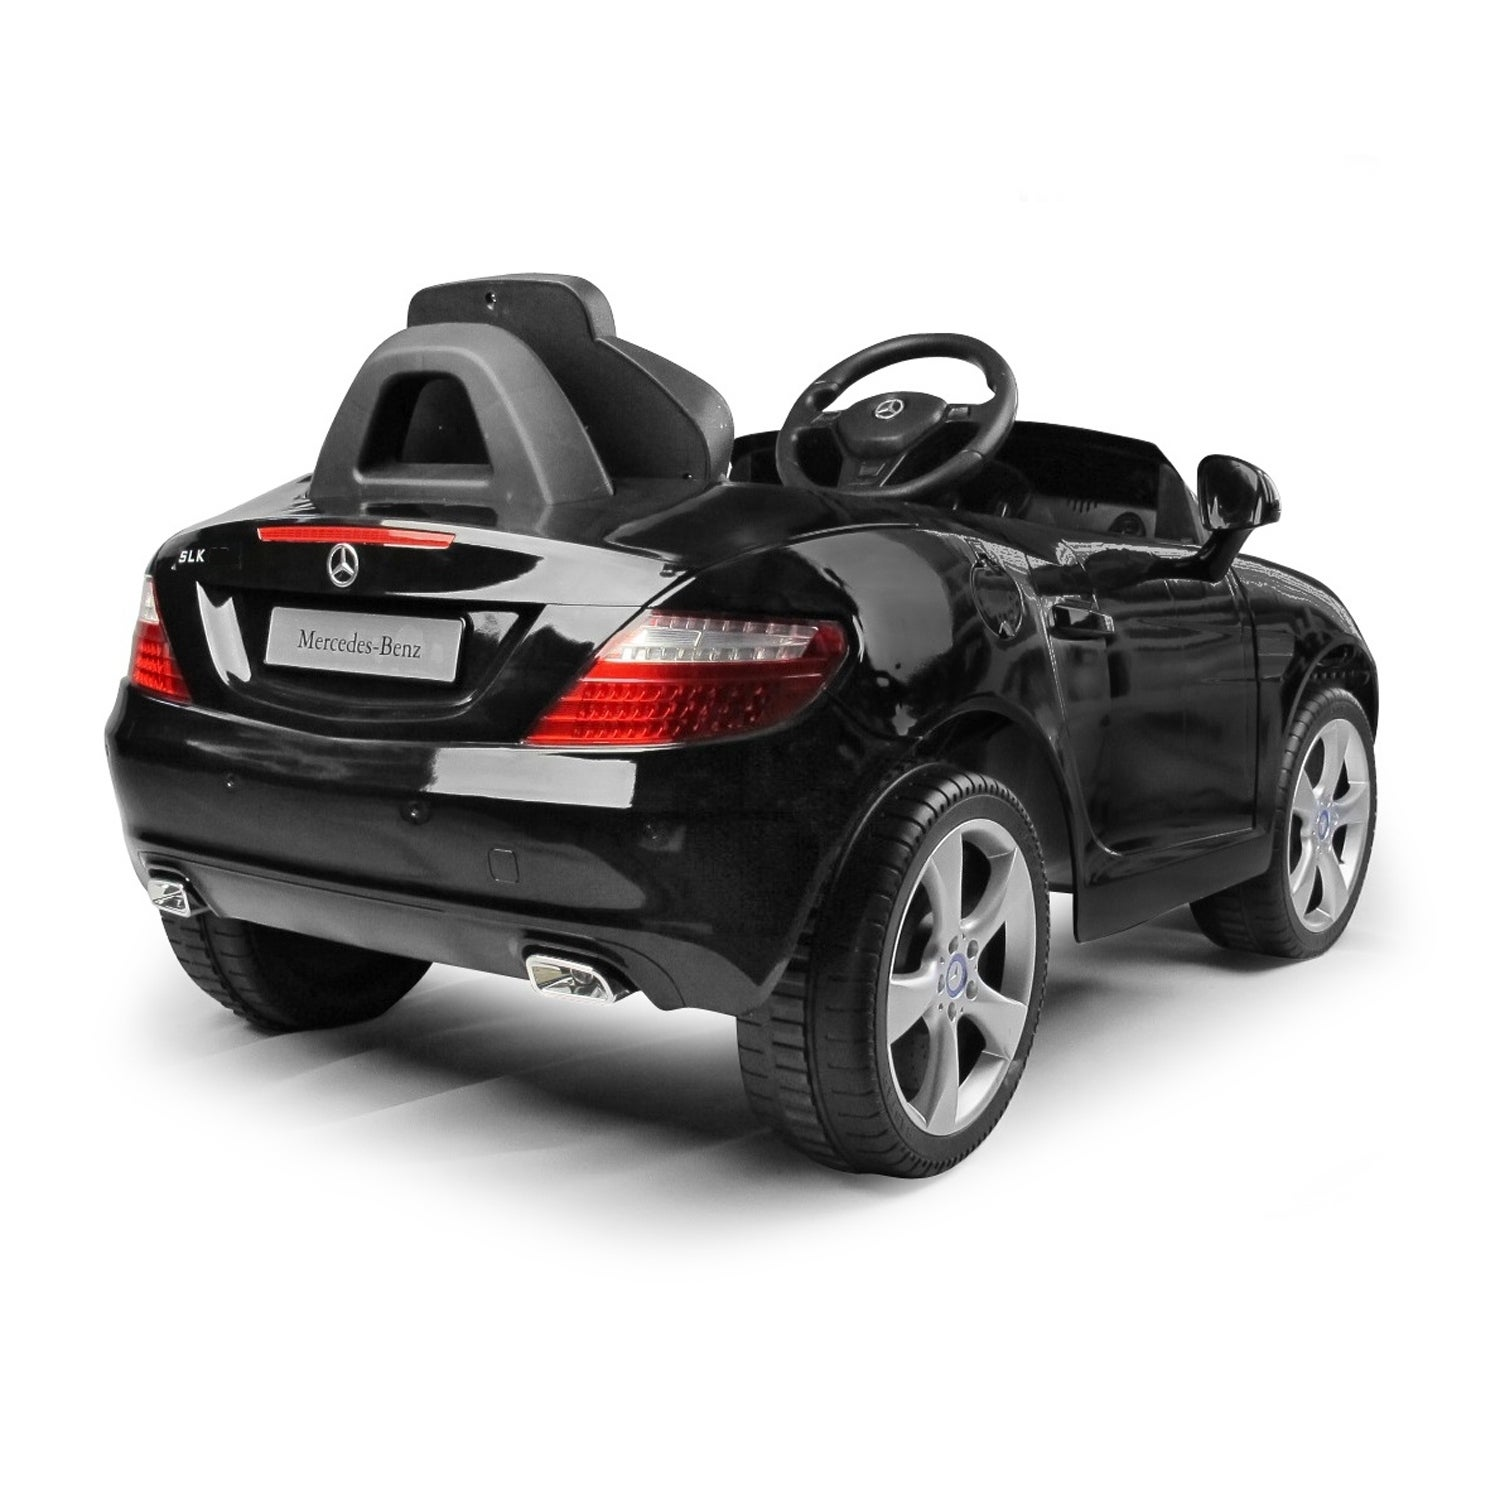 Mercedes Benz SLK Class 6V Kids Electric Ride On Car With MP3 And Remote  Control   Black   Free Shipping Today   Overstock   24175443